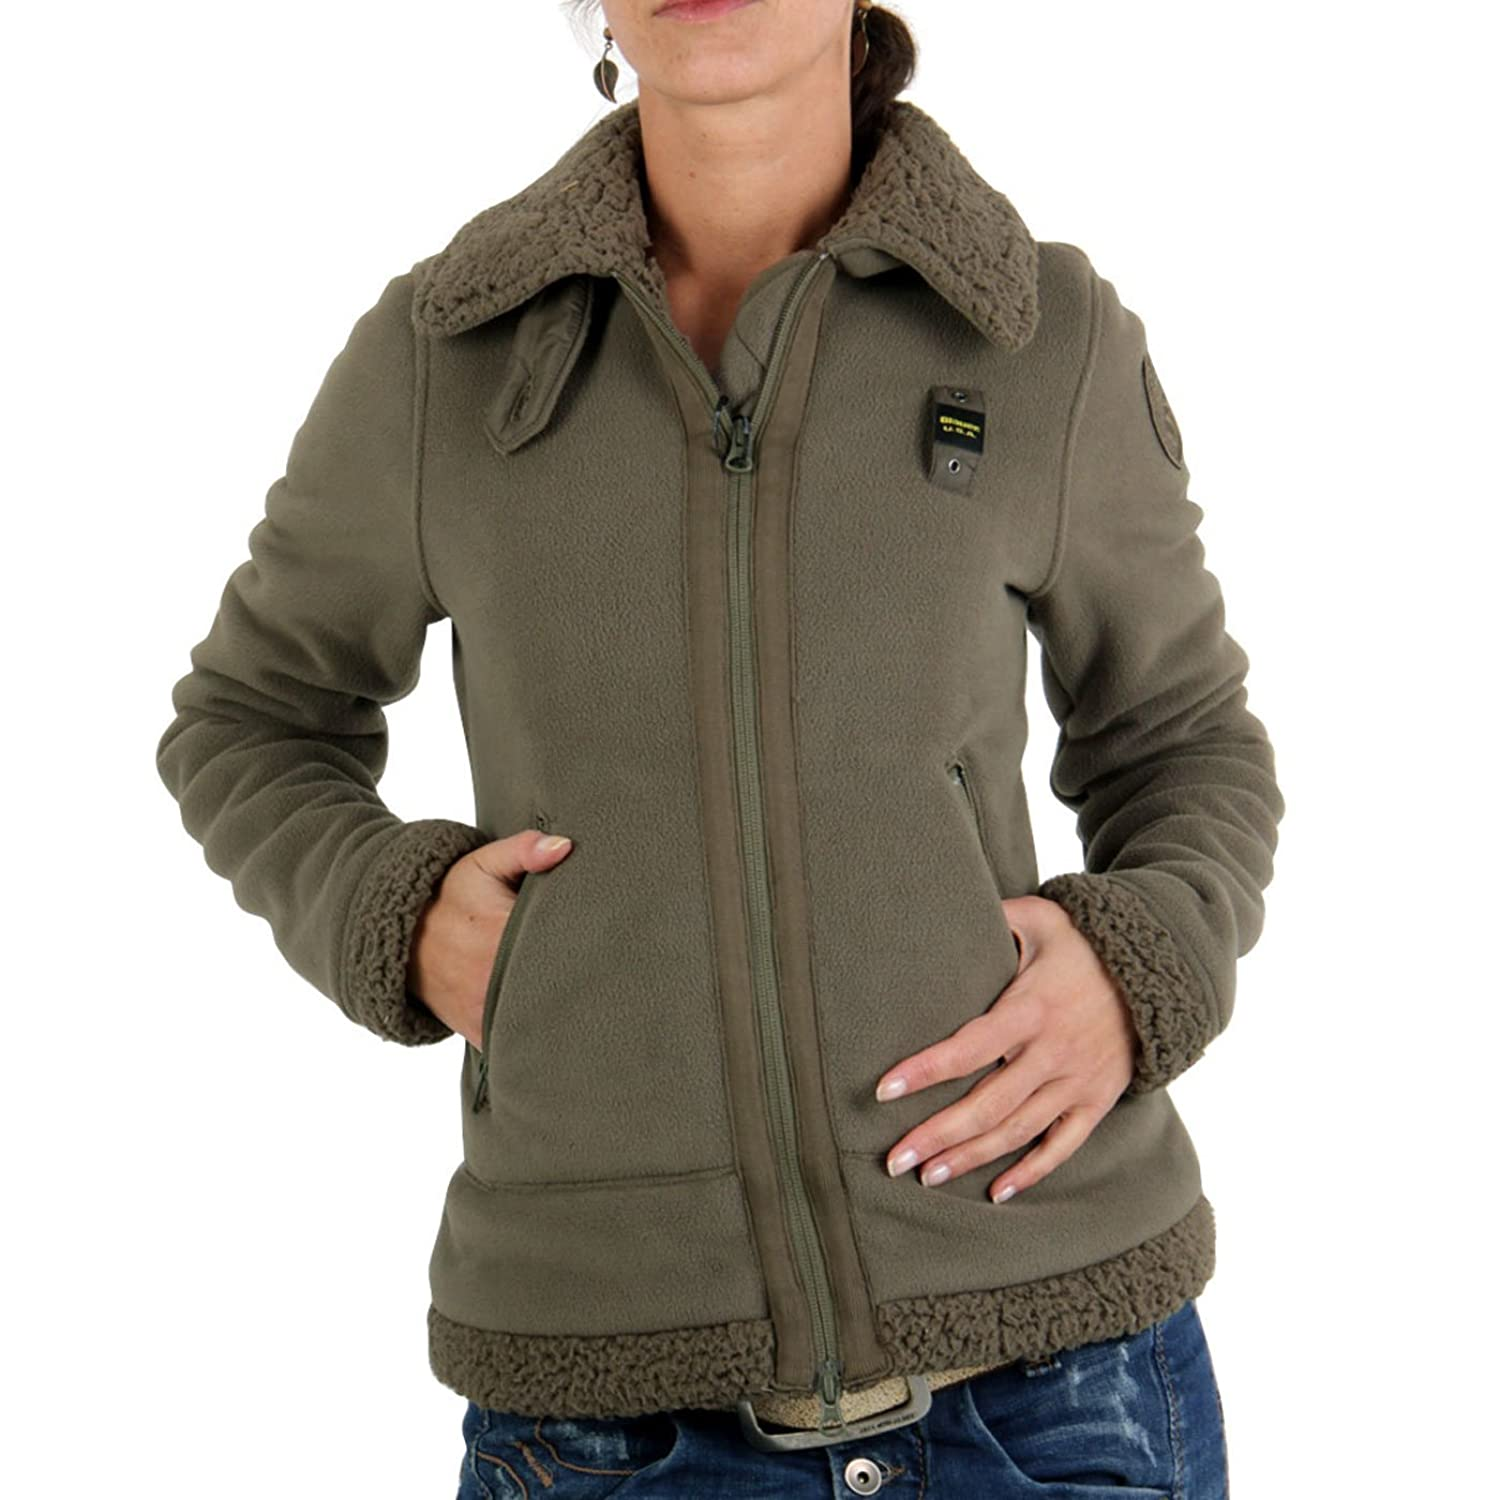 BLAUER USA Damen Winter Fleecejacke Army BLD0327